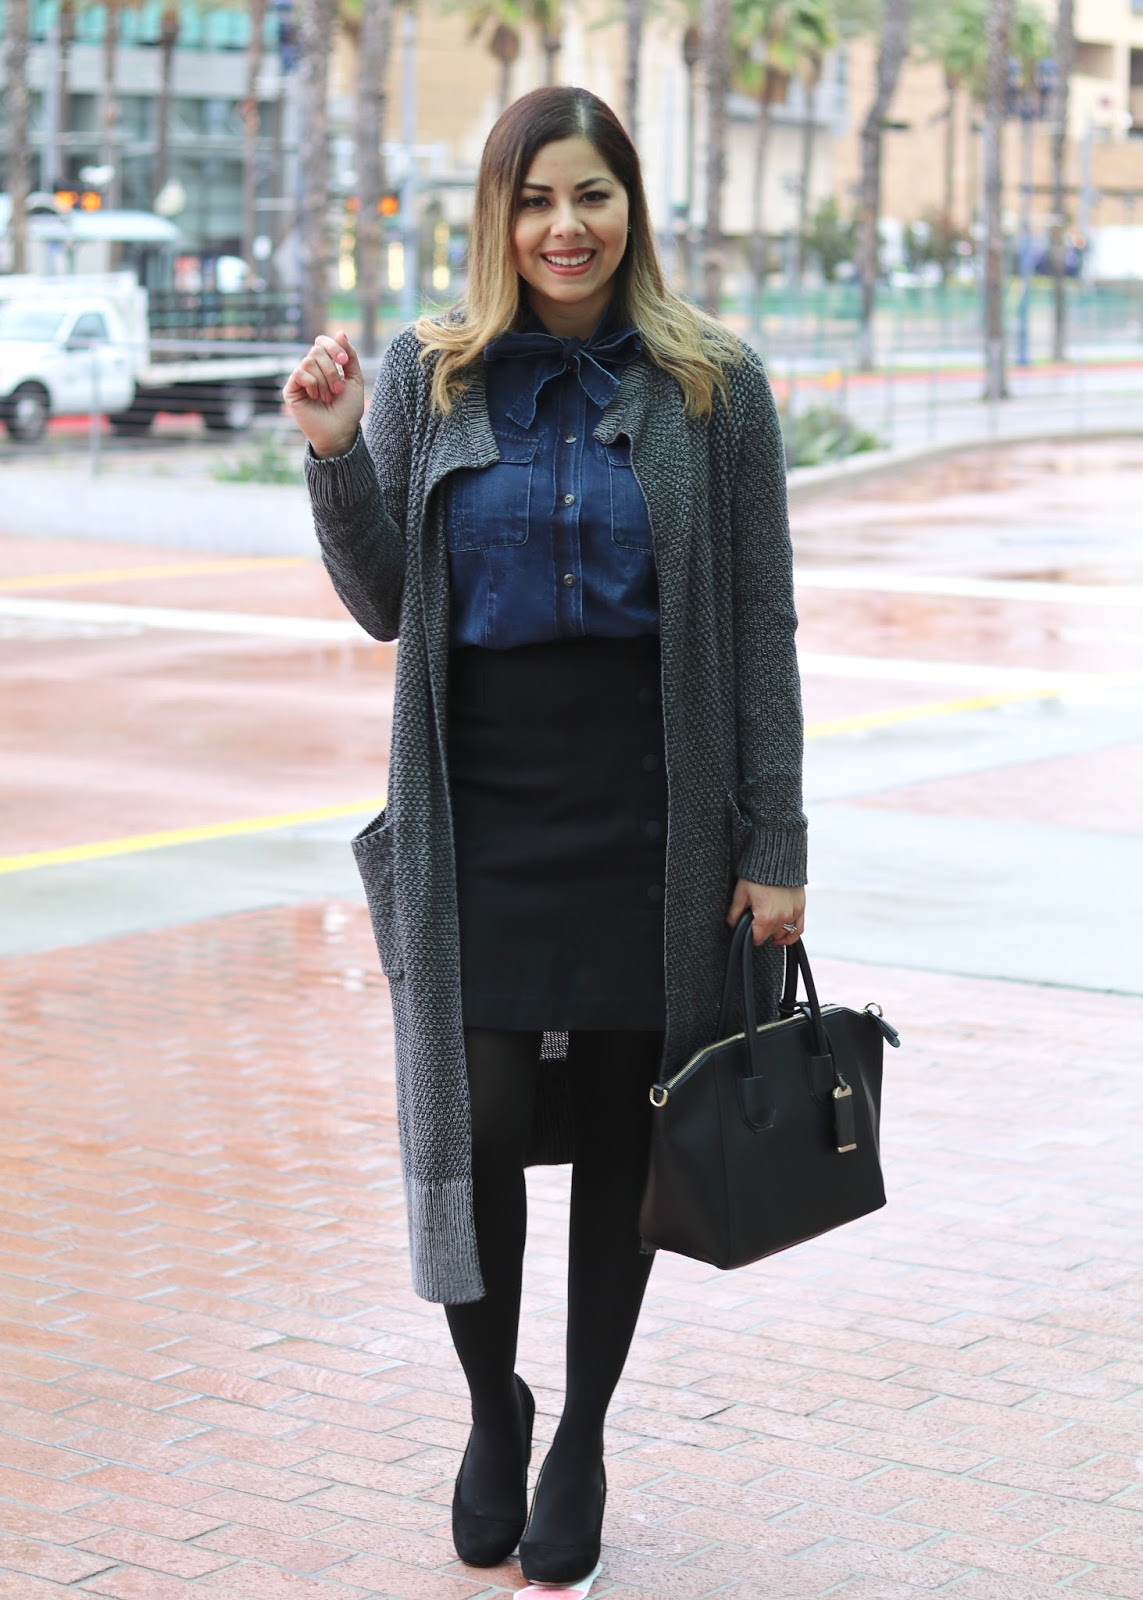 bloggers who wear cabi, cabi outfit ideas, winter outfit ideas, stylish winter outfits